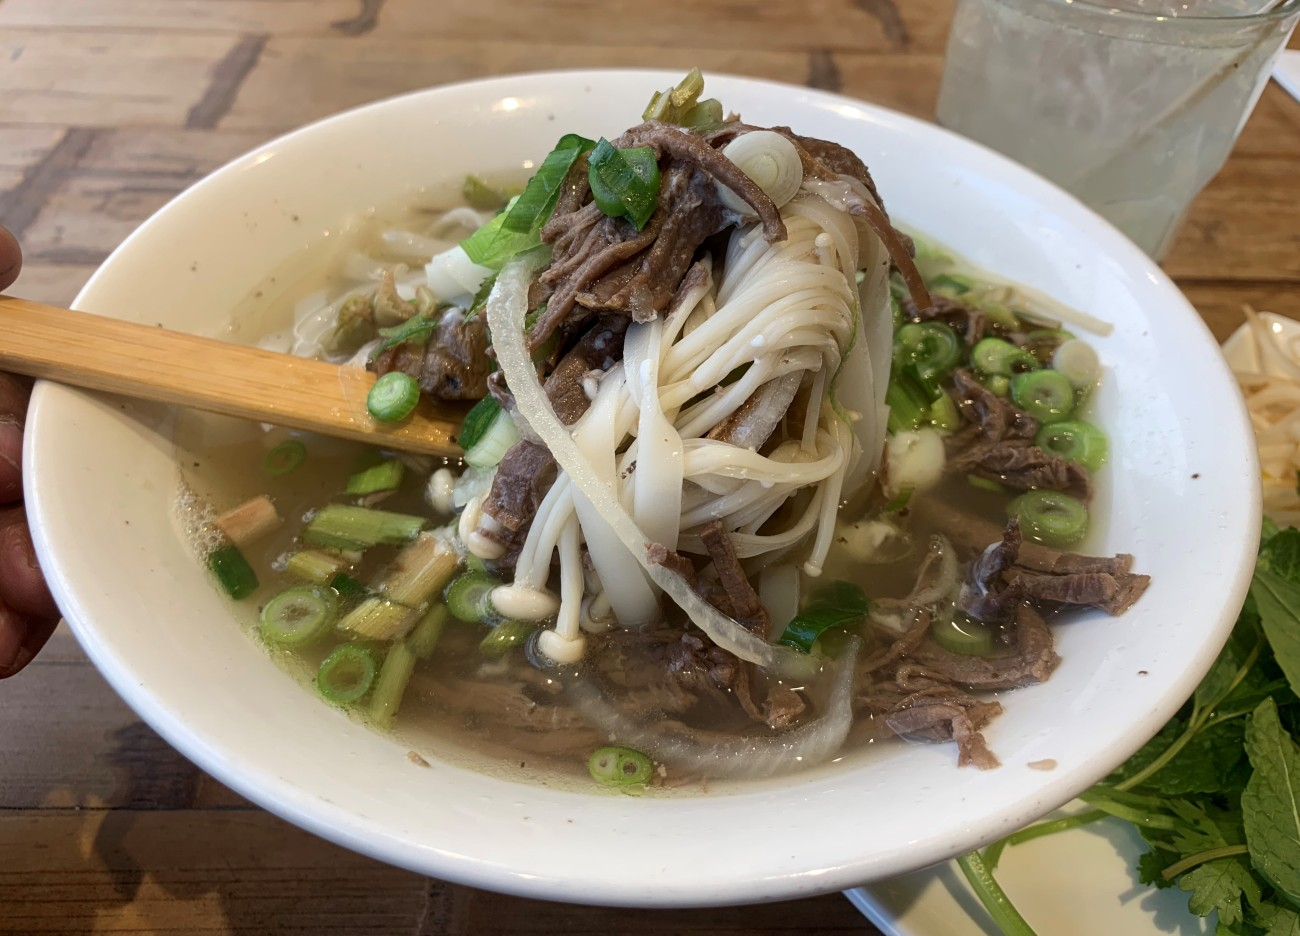 Brisket and Mushrooms in a Pho